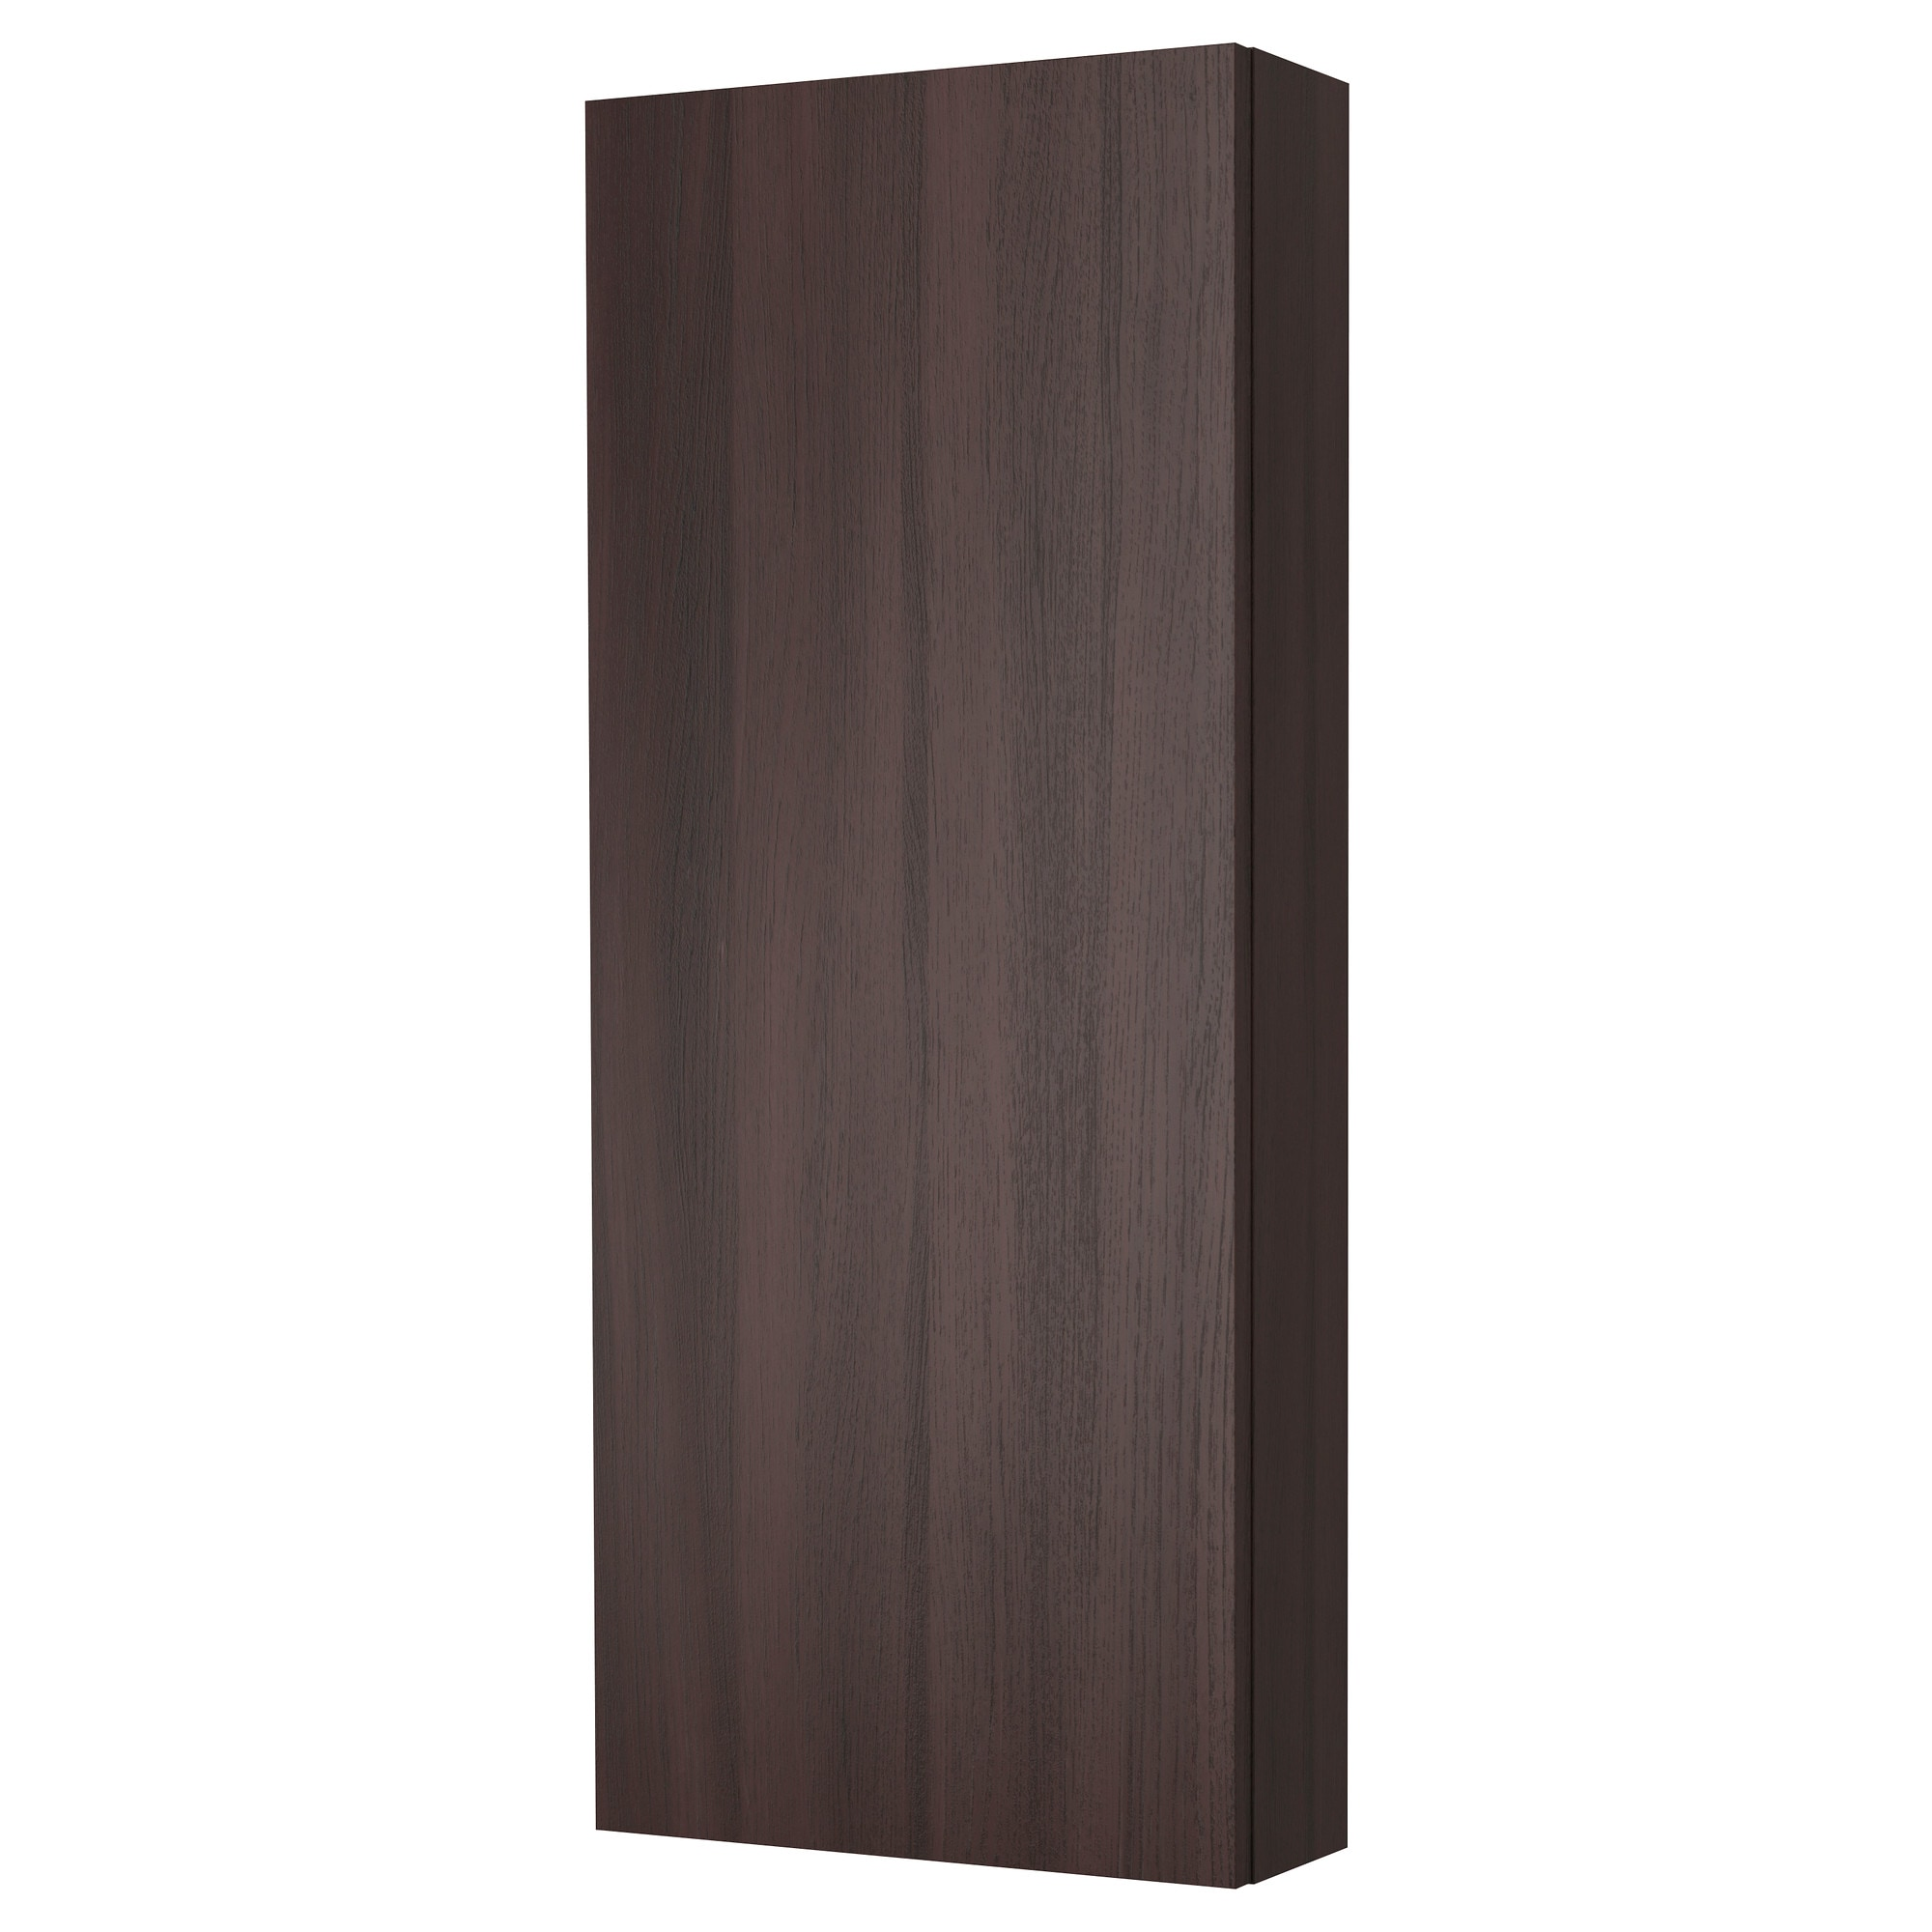 Godmorgon wall cabinet with 1 door black brown black brown width 15